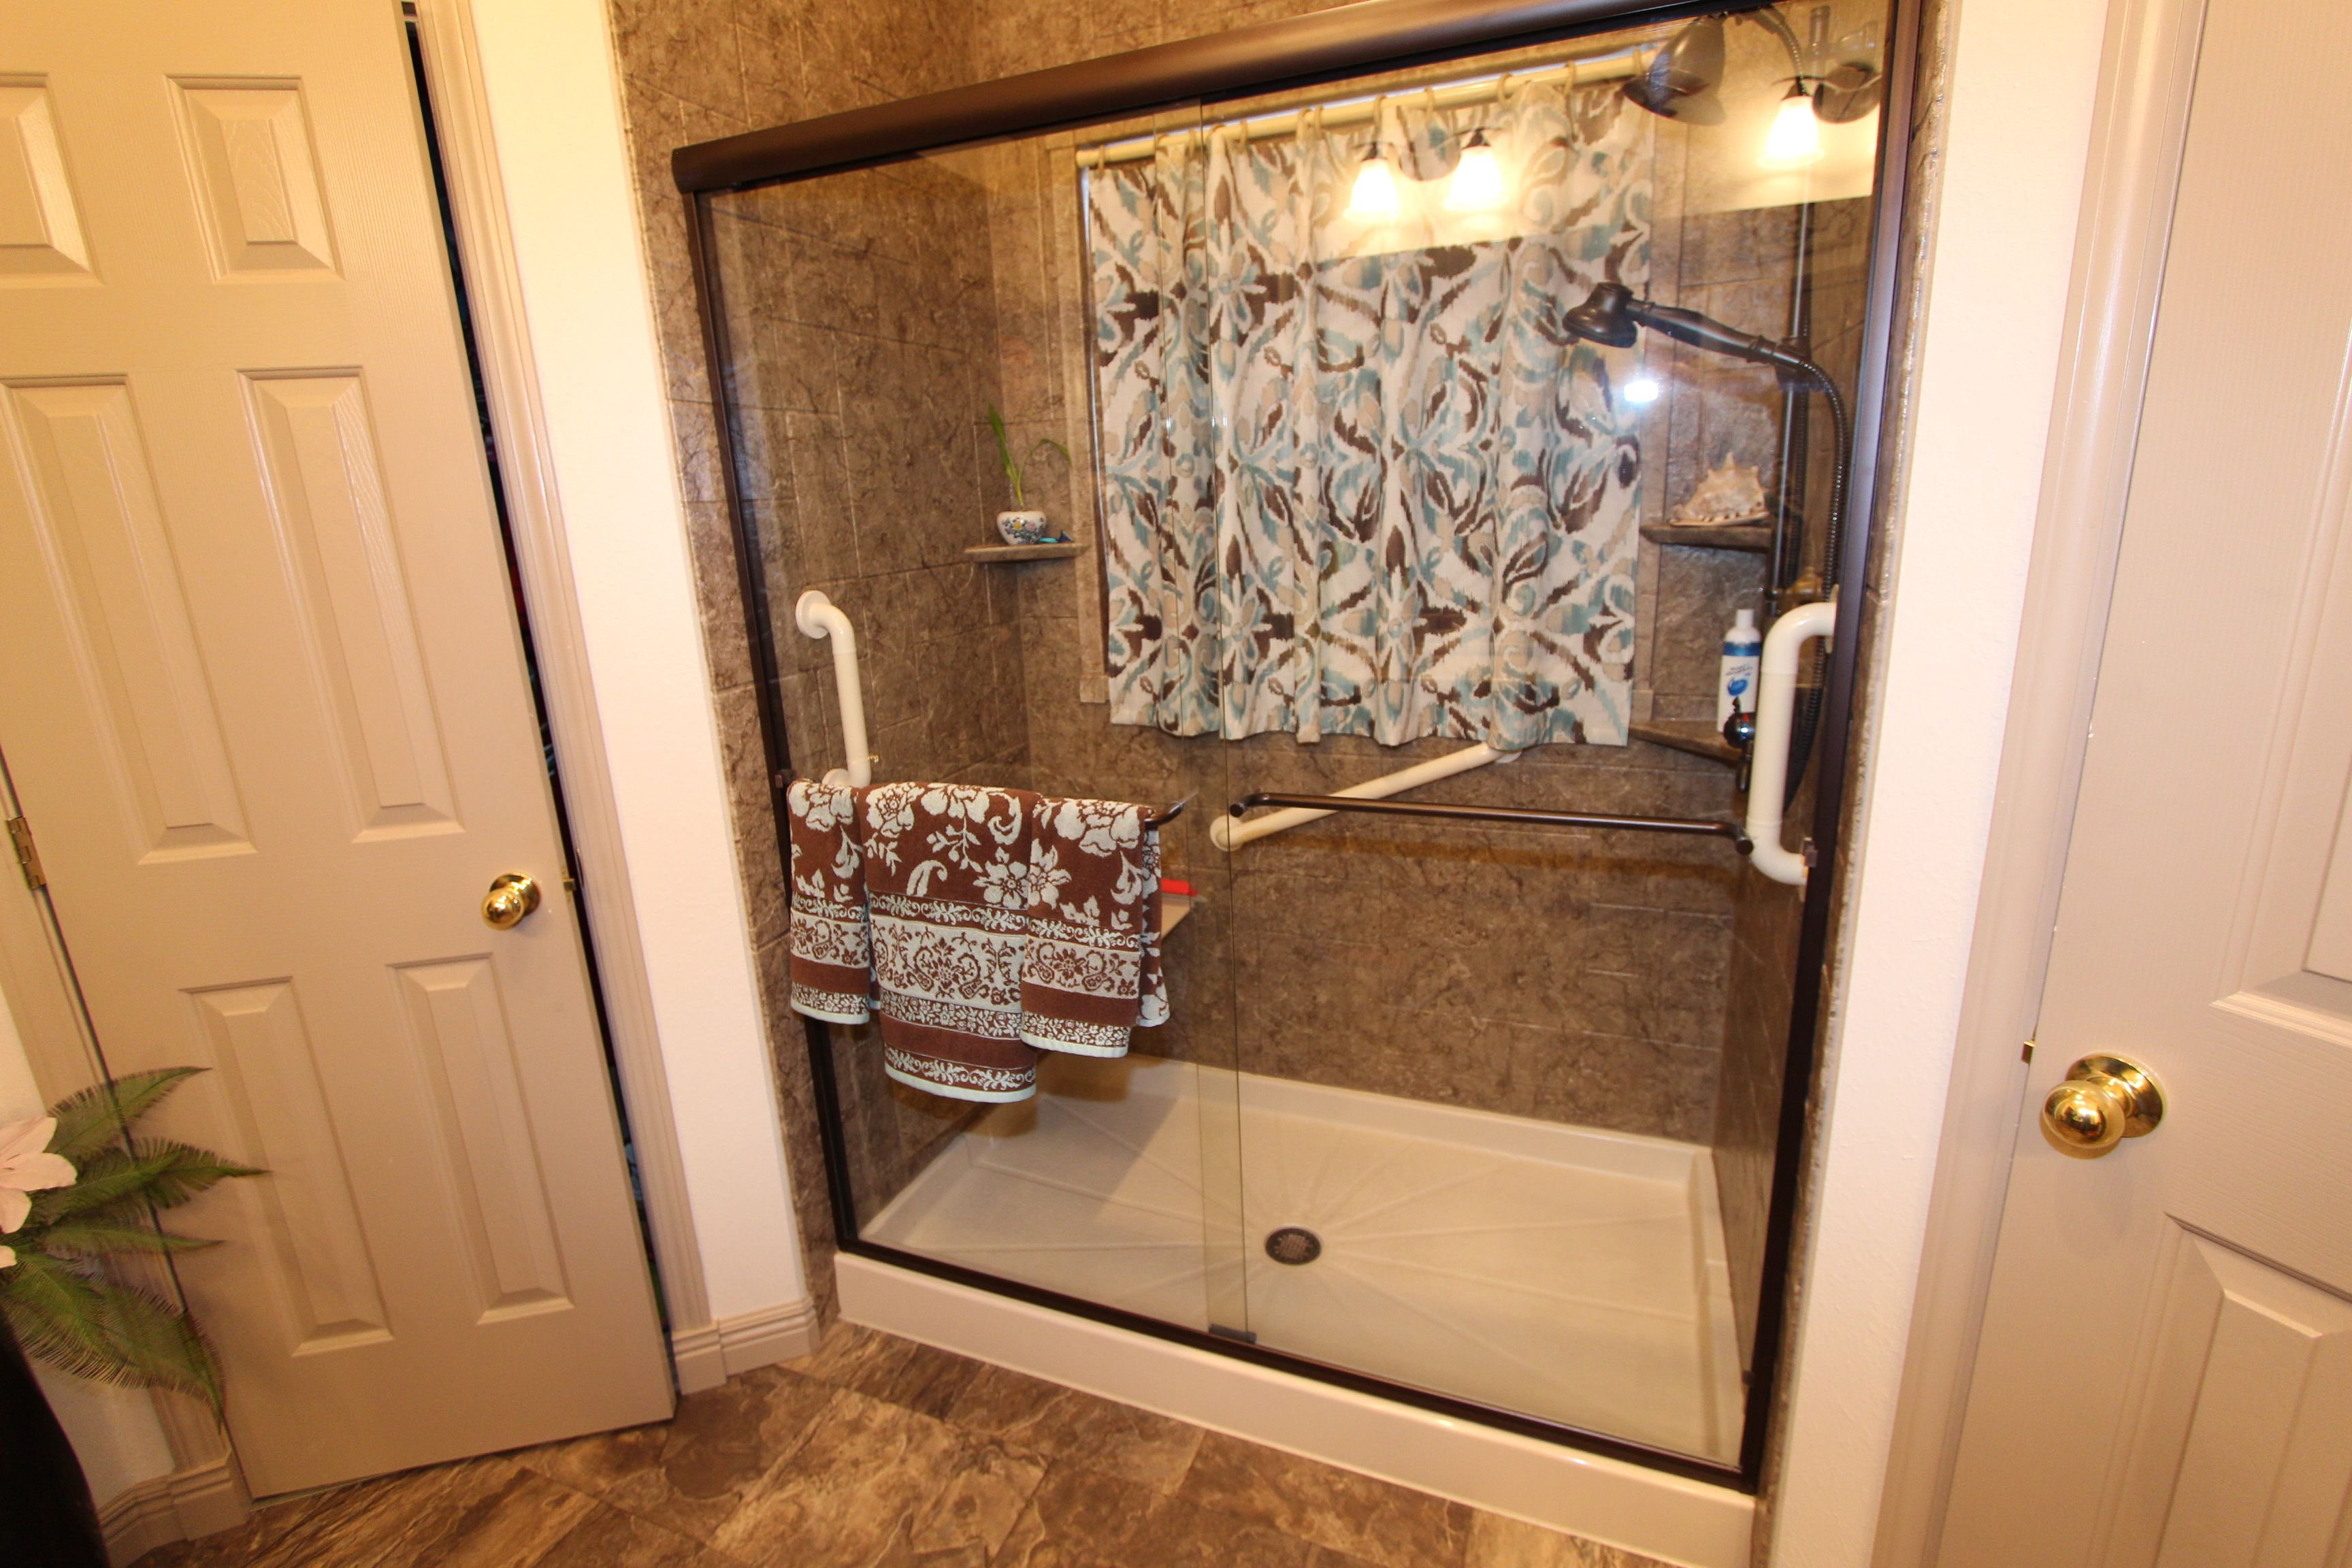 pinterest bathroom delectable and viejo remodels photos bath remodeling kitchen ideas on best pictures remodel mesmerizing inspiration master remodelling